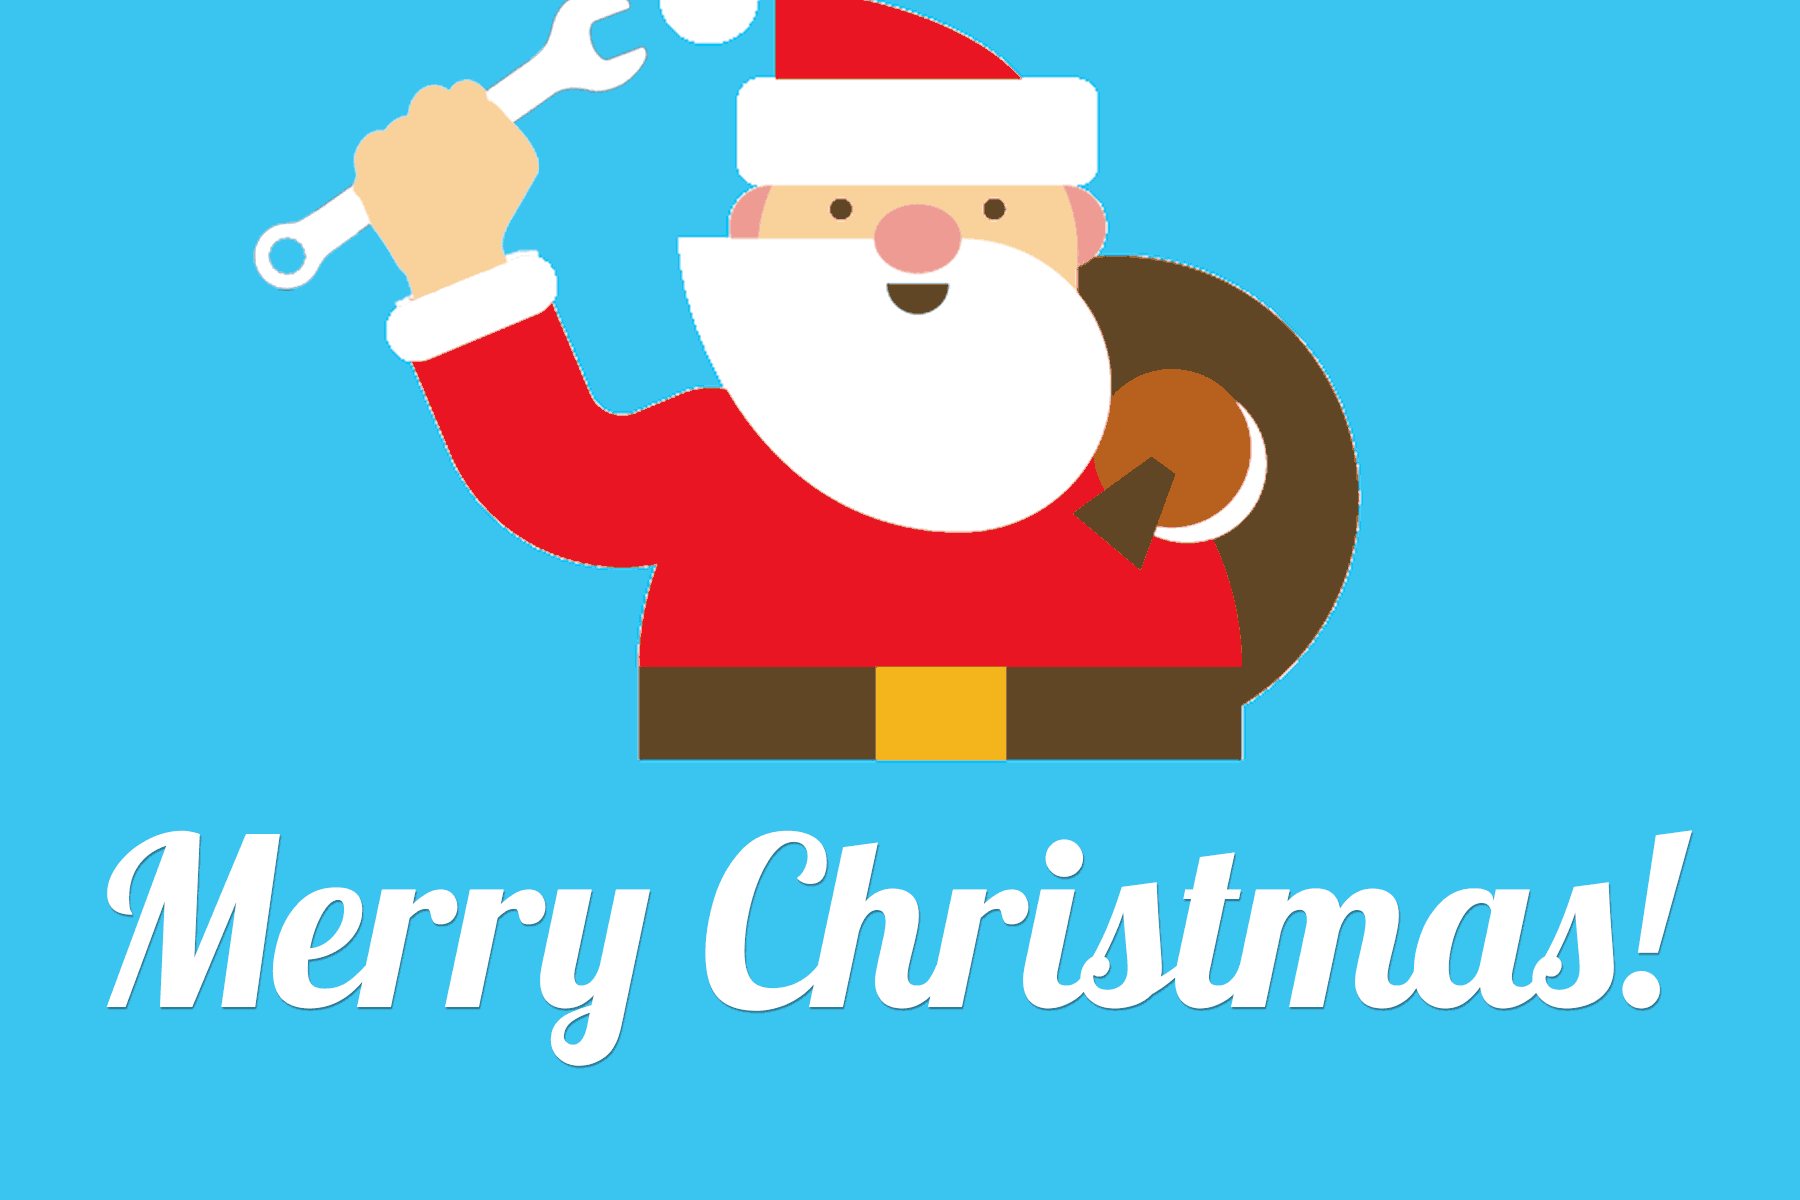 Santa - MVS wishes you a Merry Christmas and Happy Holidays!